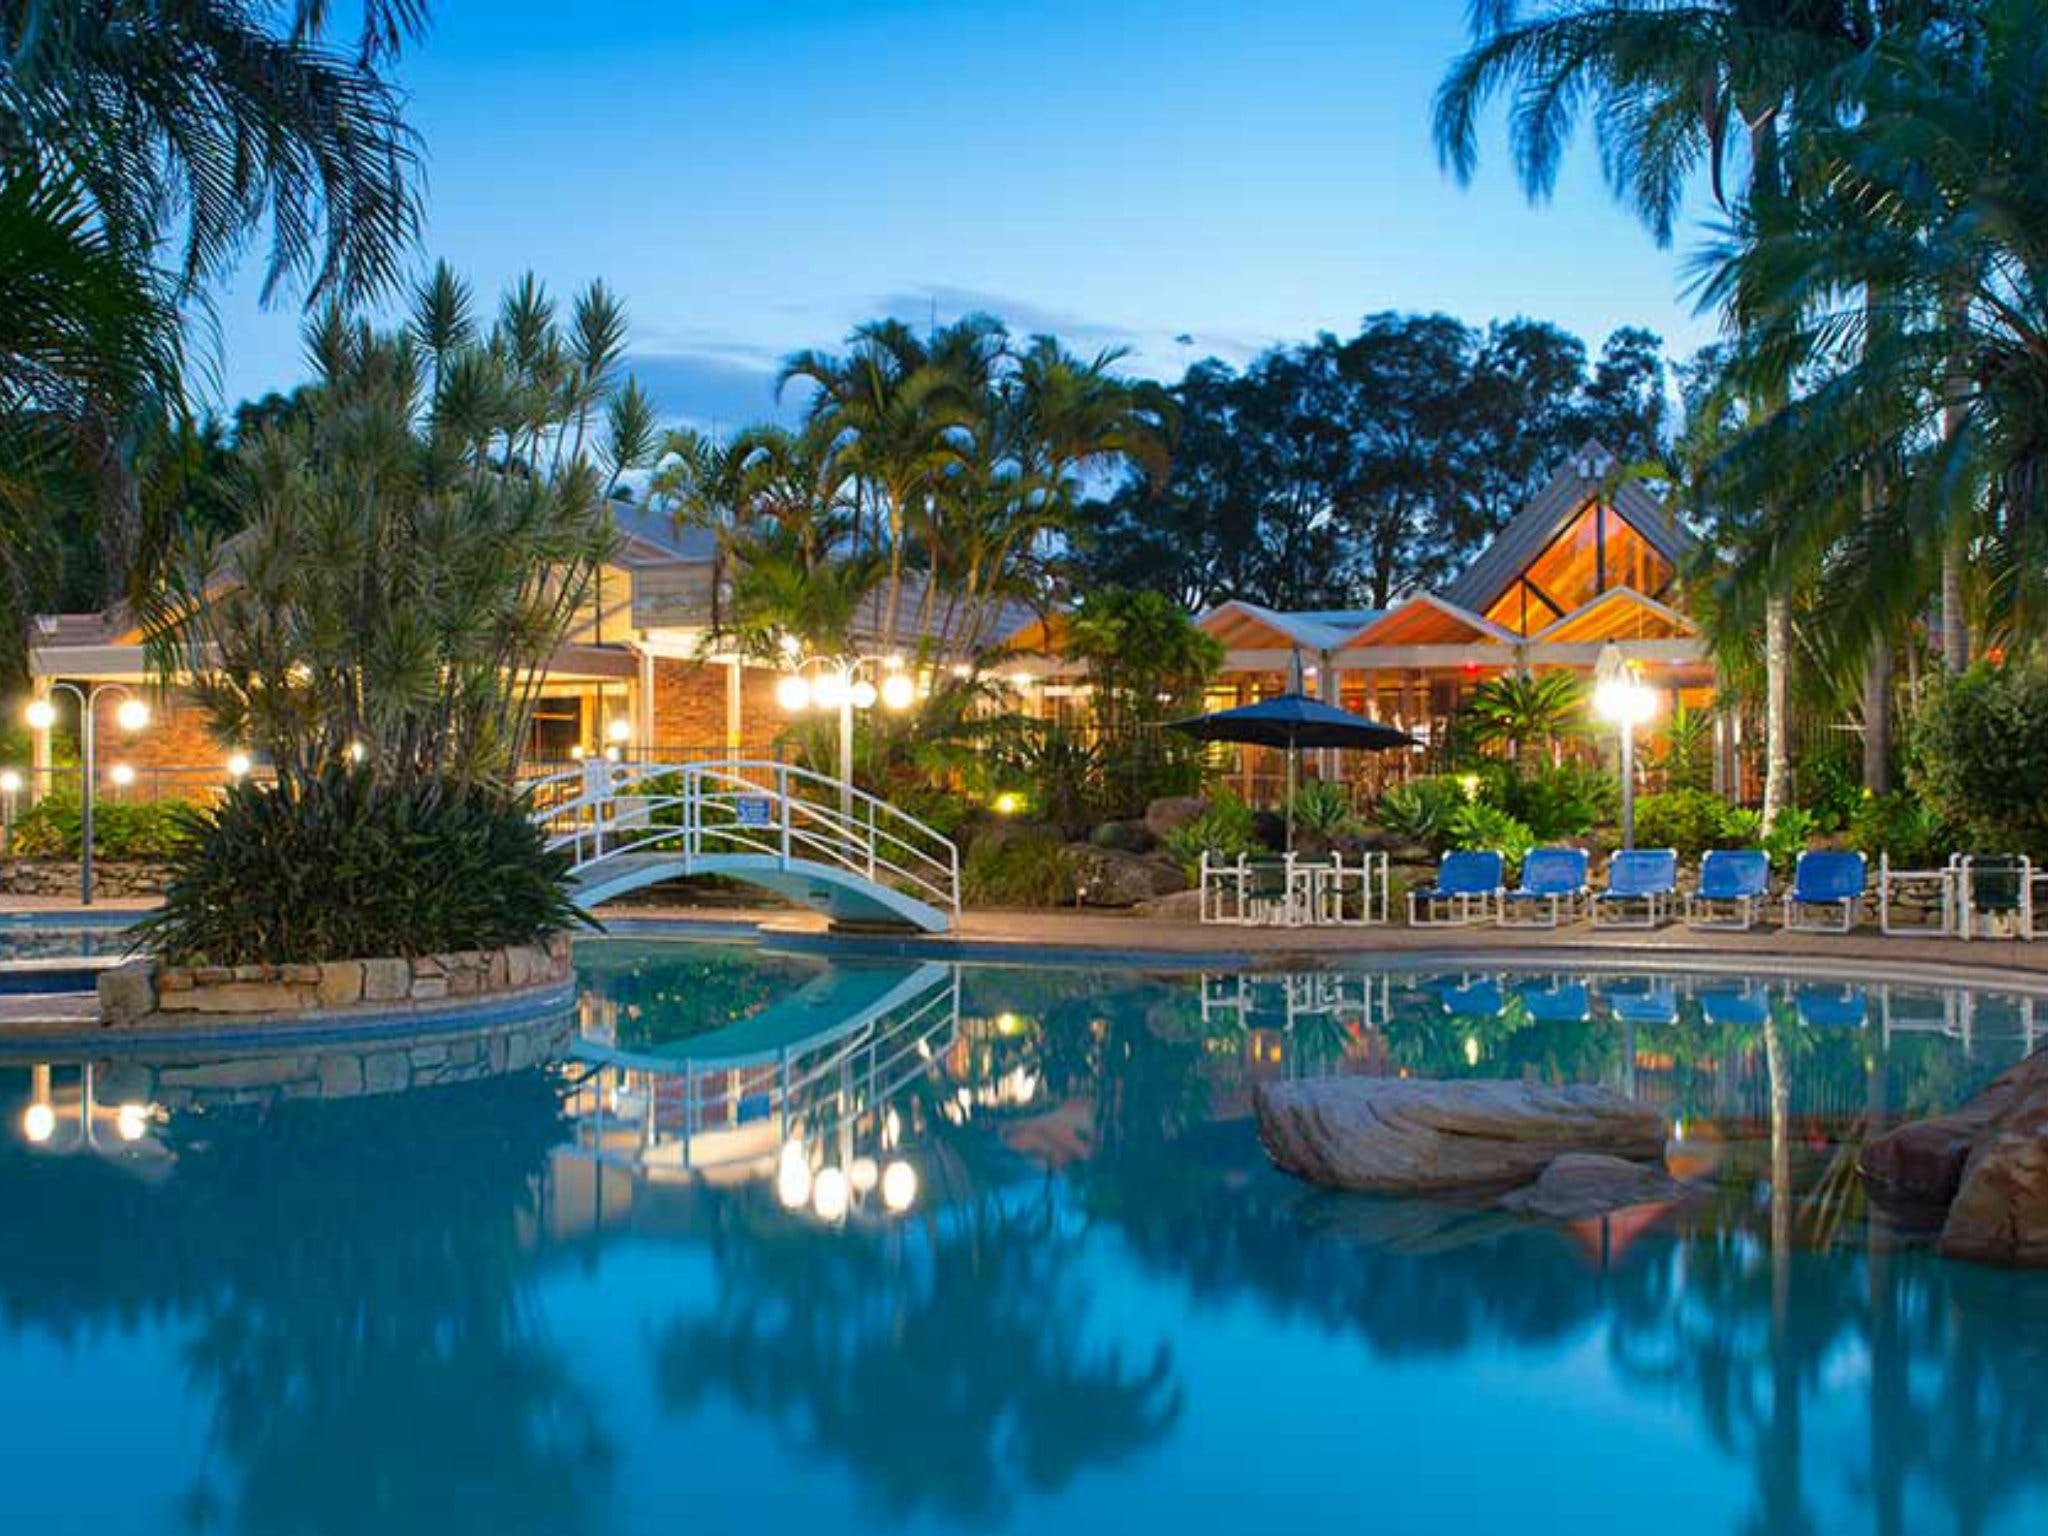 Boambee Bay Resort - Accommodation Cairns